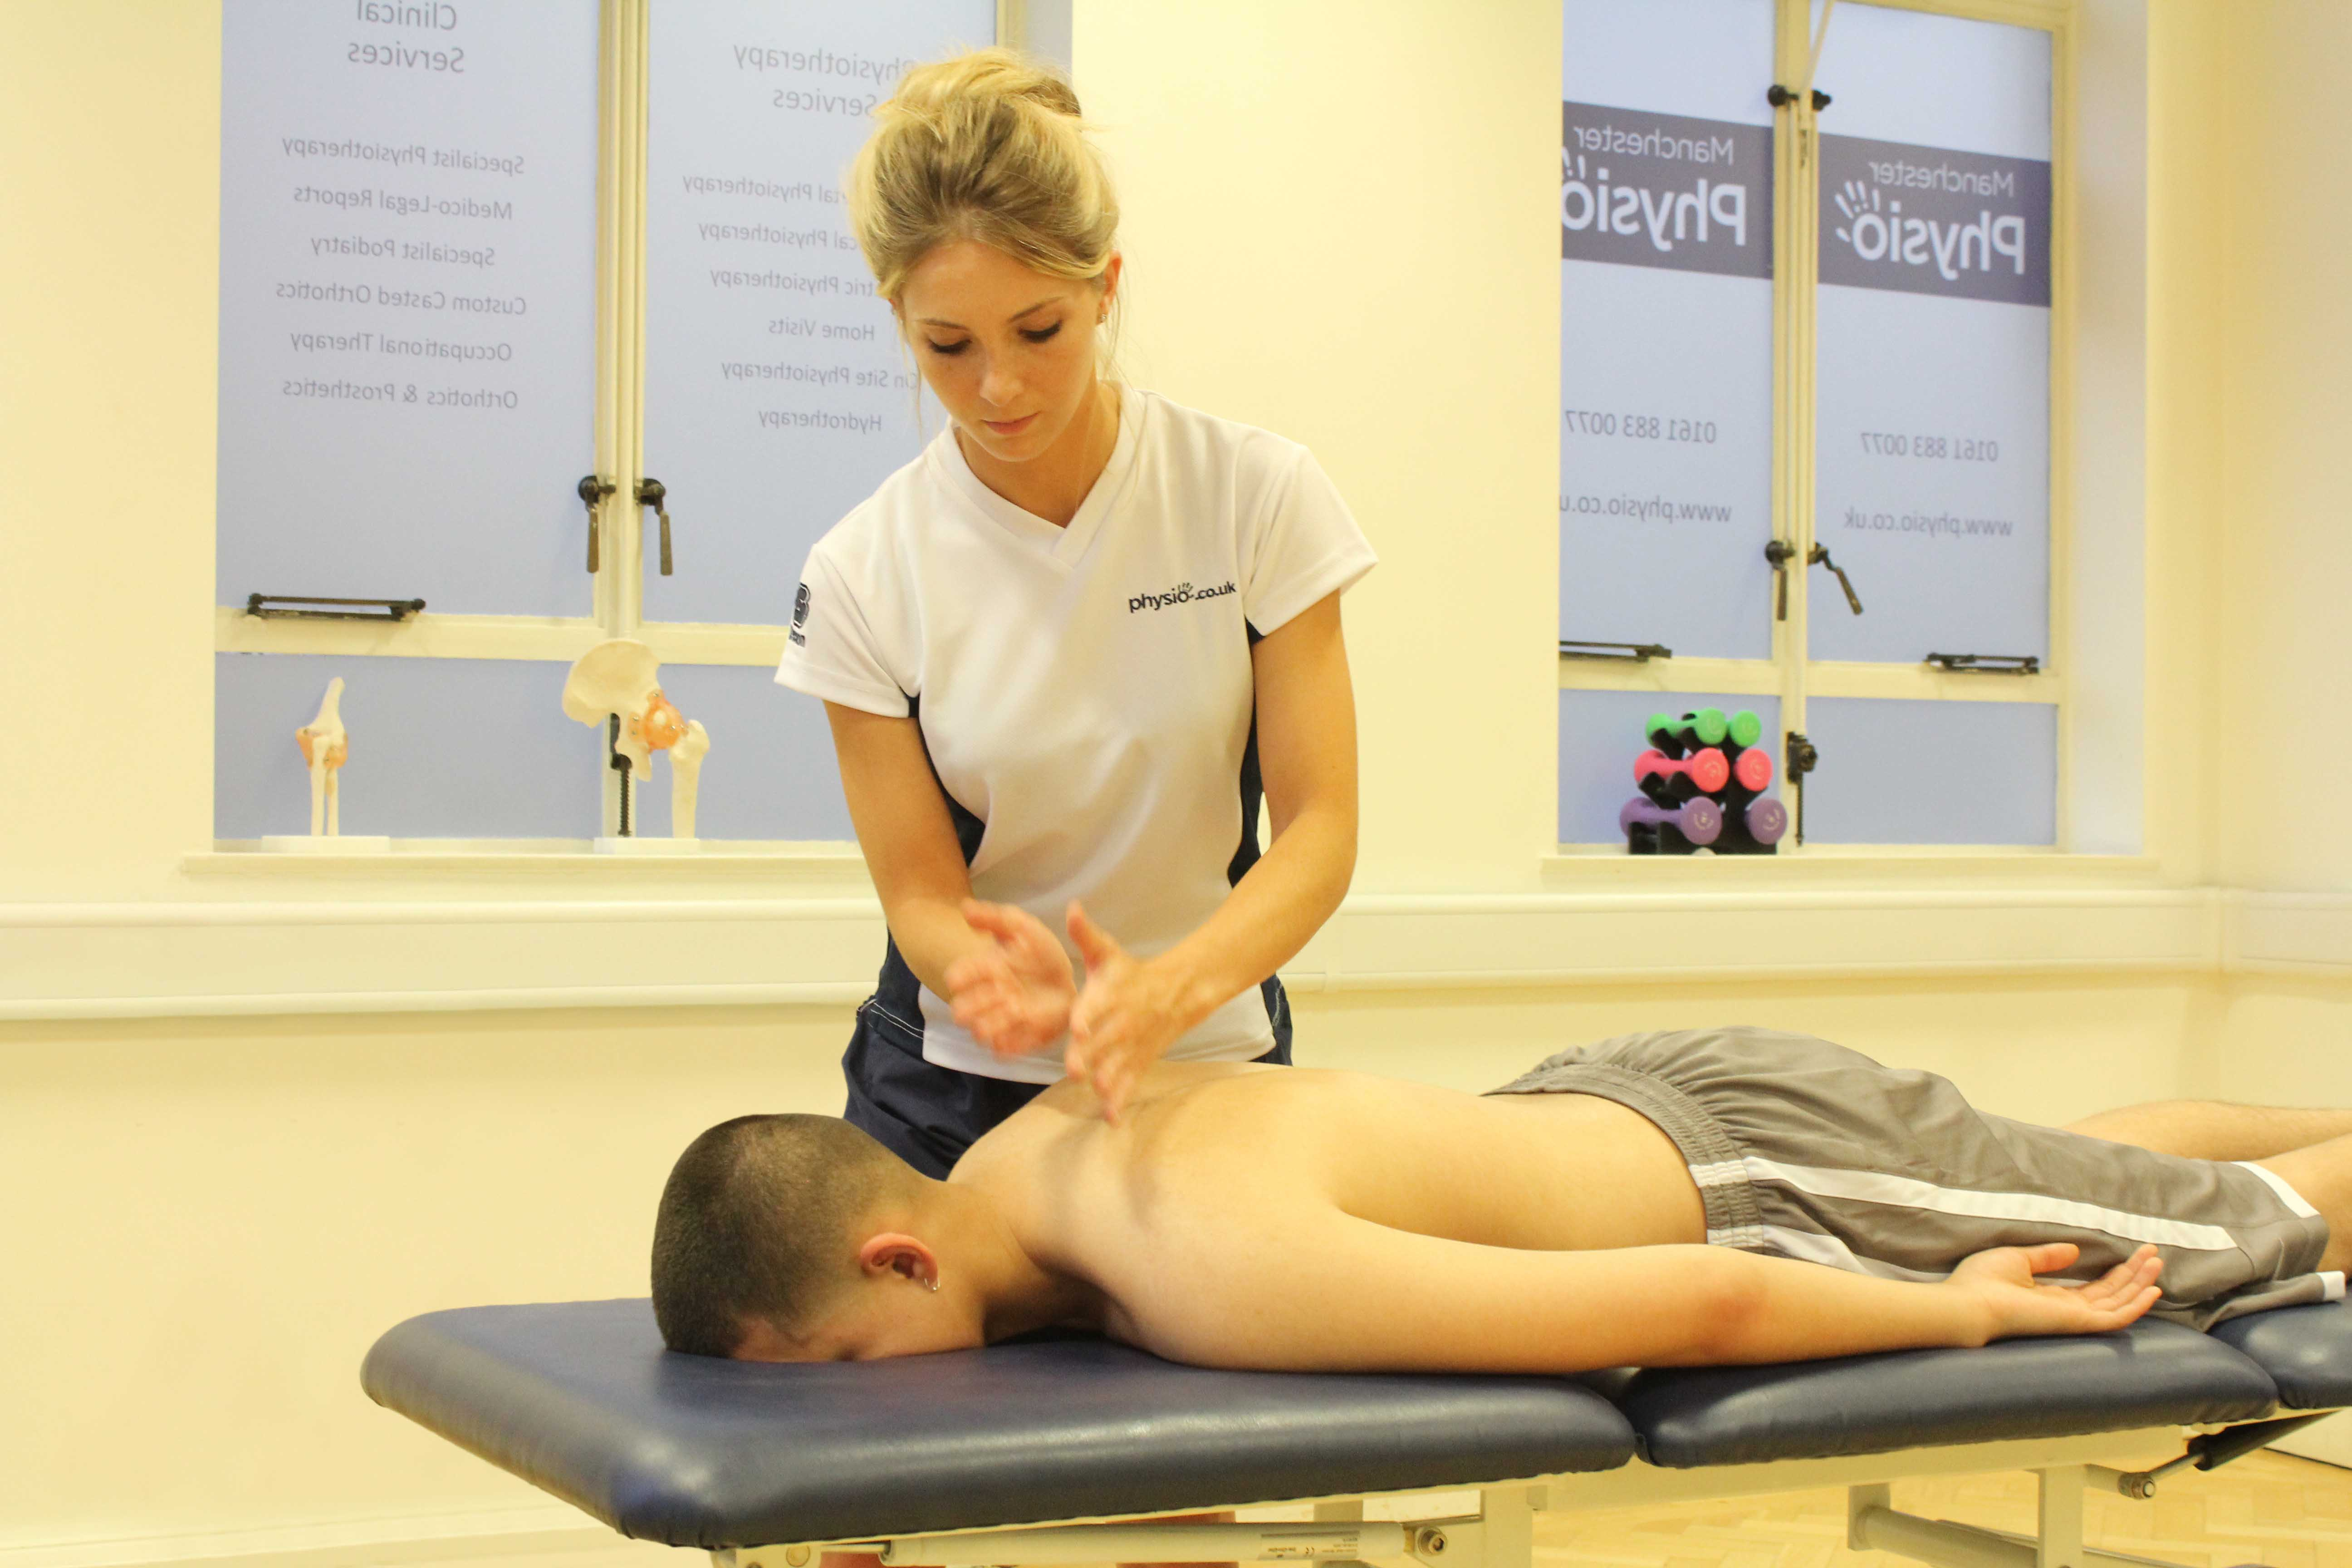 Hacking percussion massage applied by an experienced MSK therapist